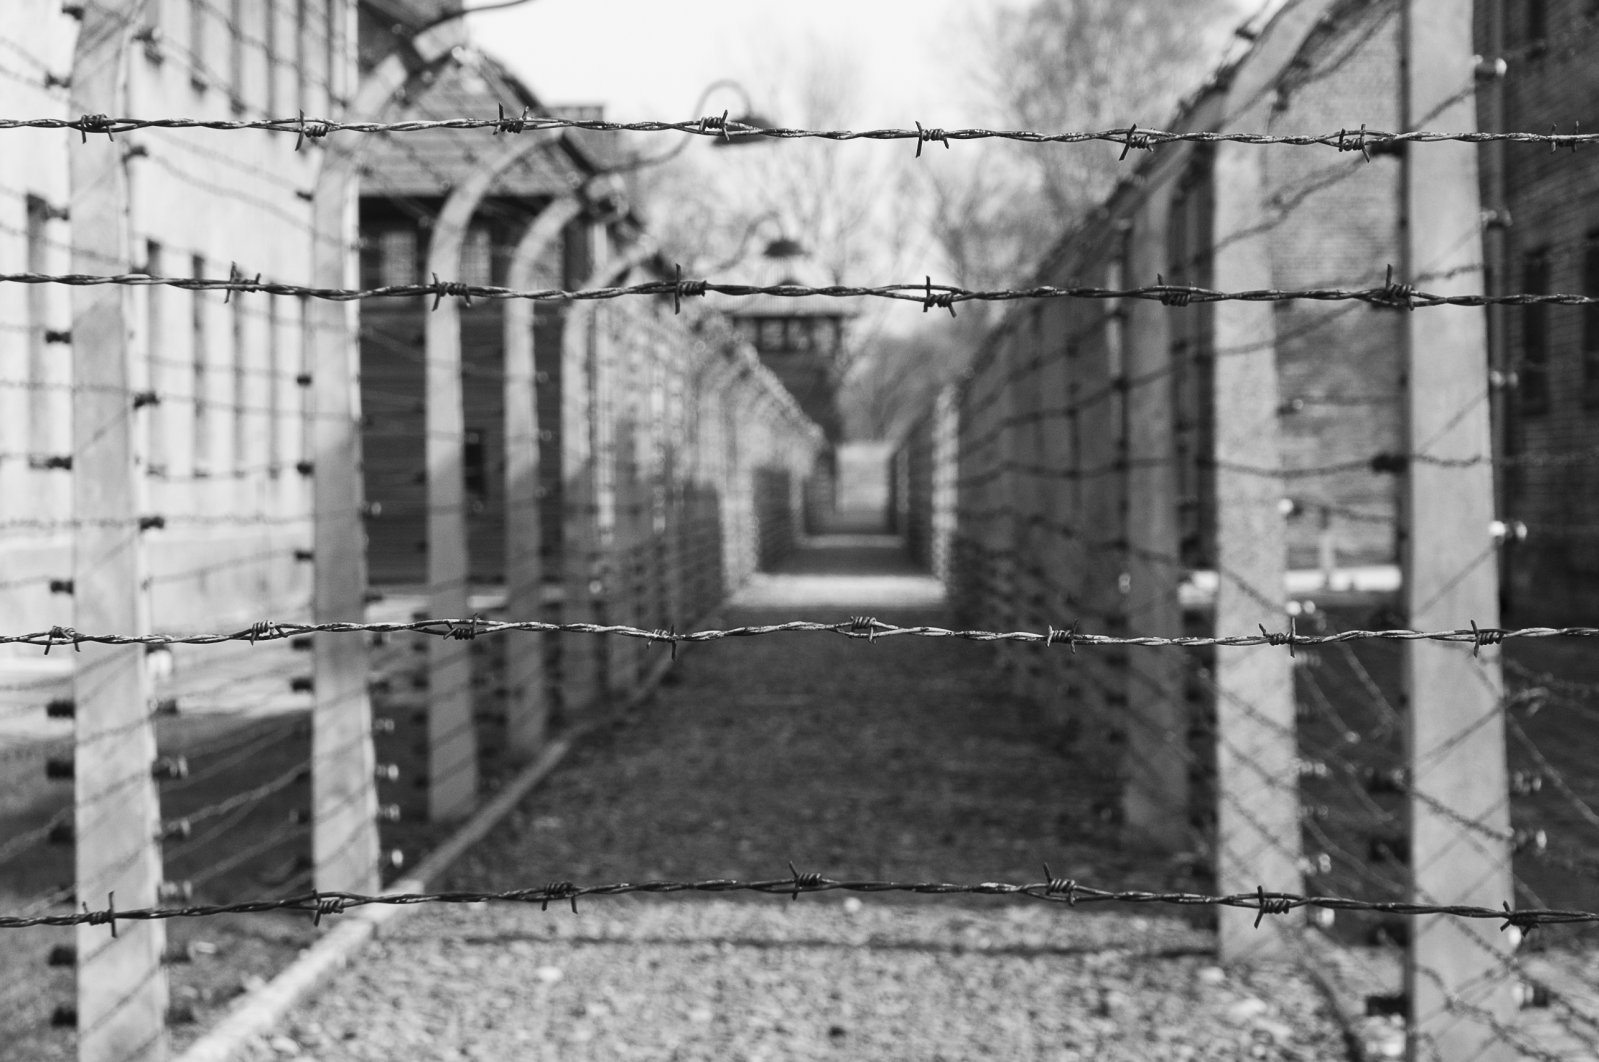 File photo of Auschwitz concentration camp in Poland. (Shutterstock Photo)